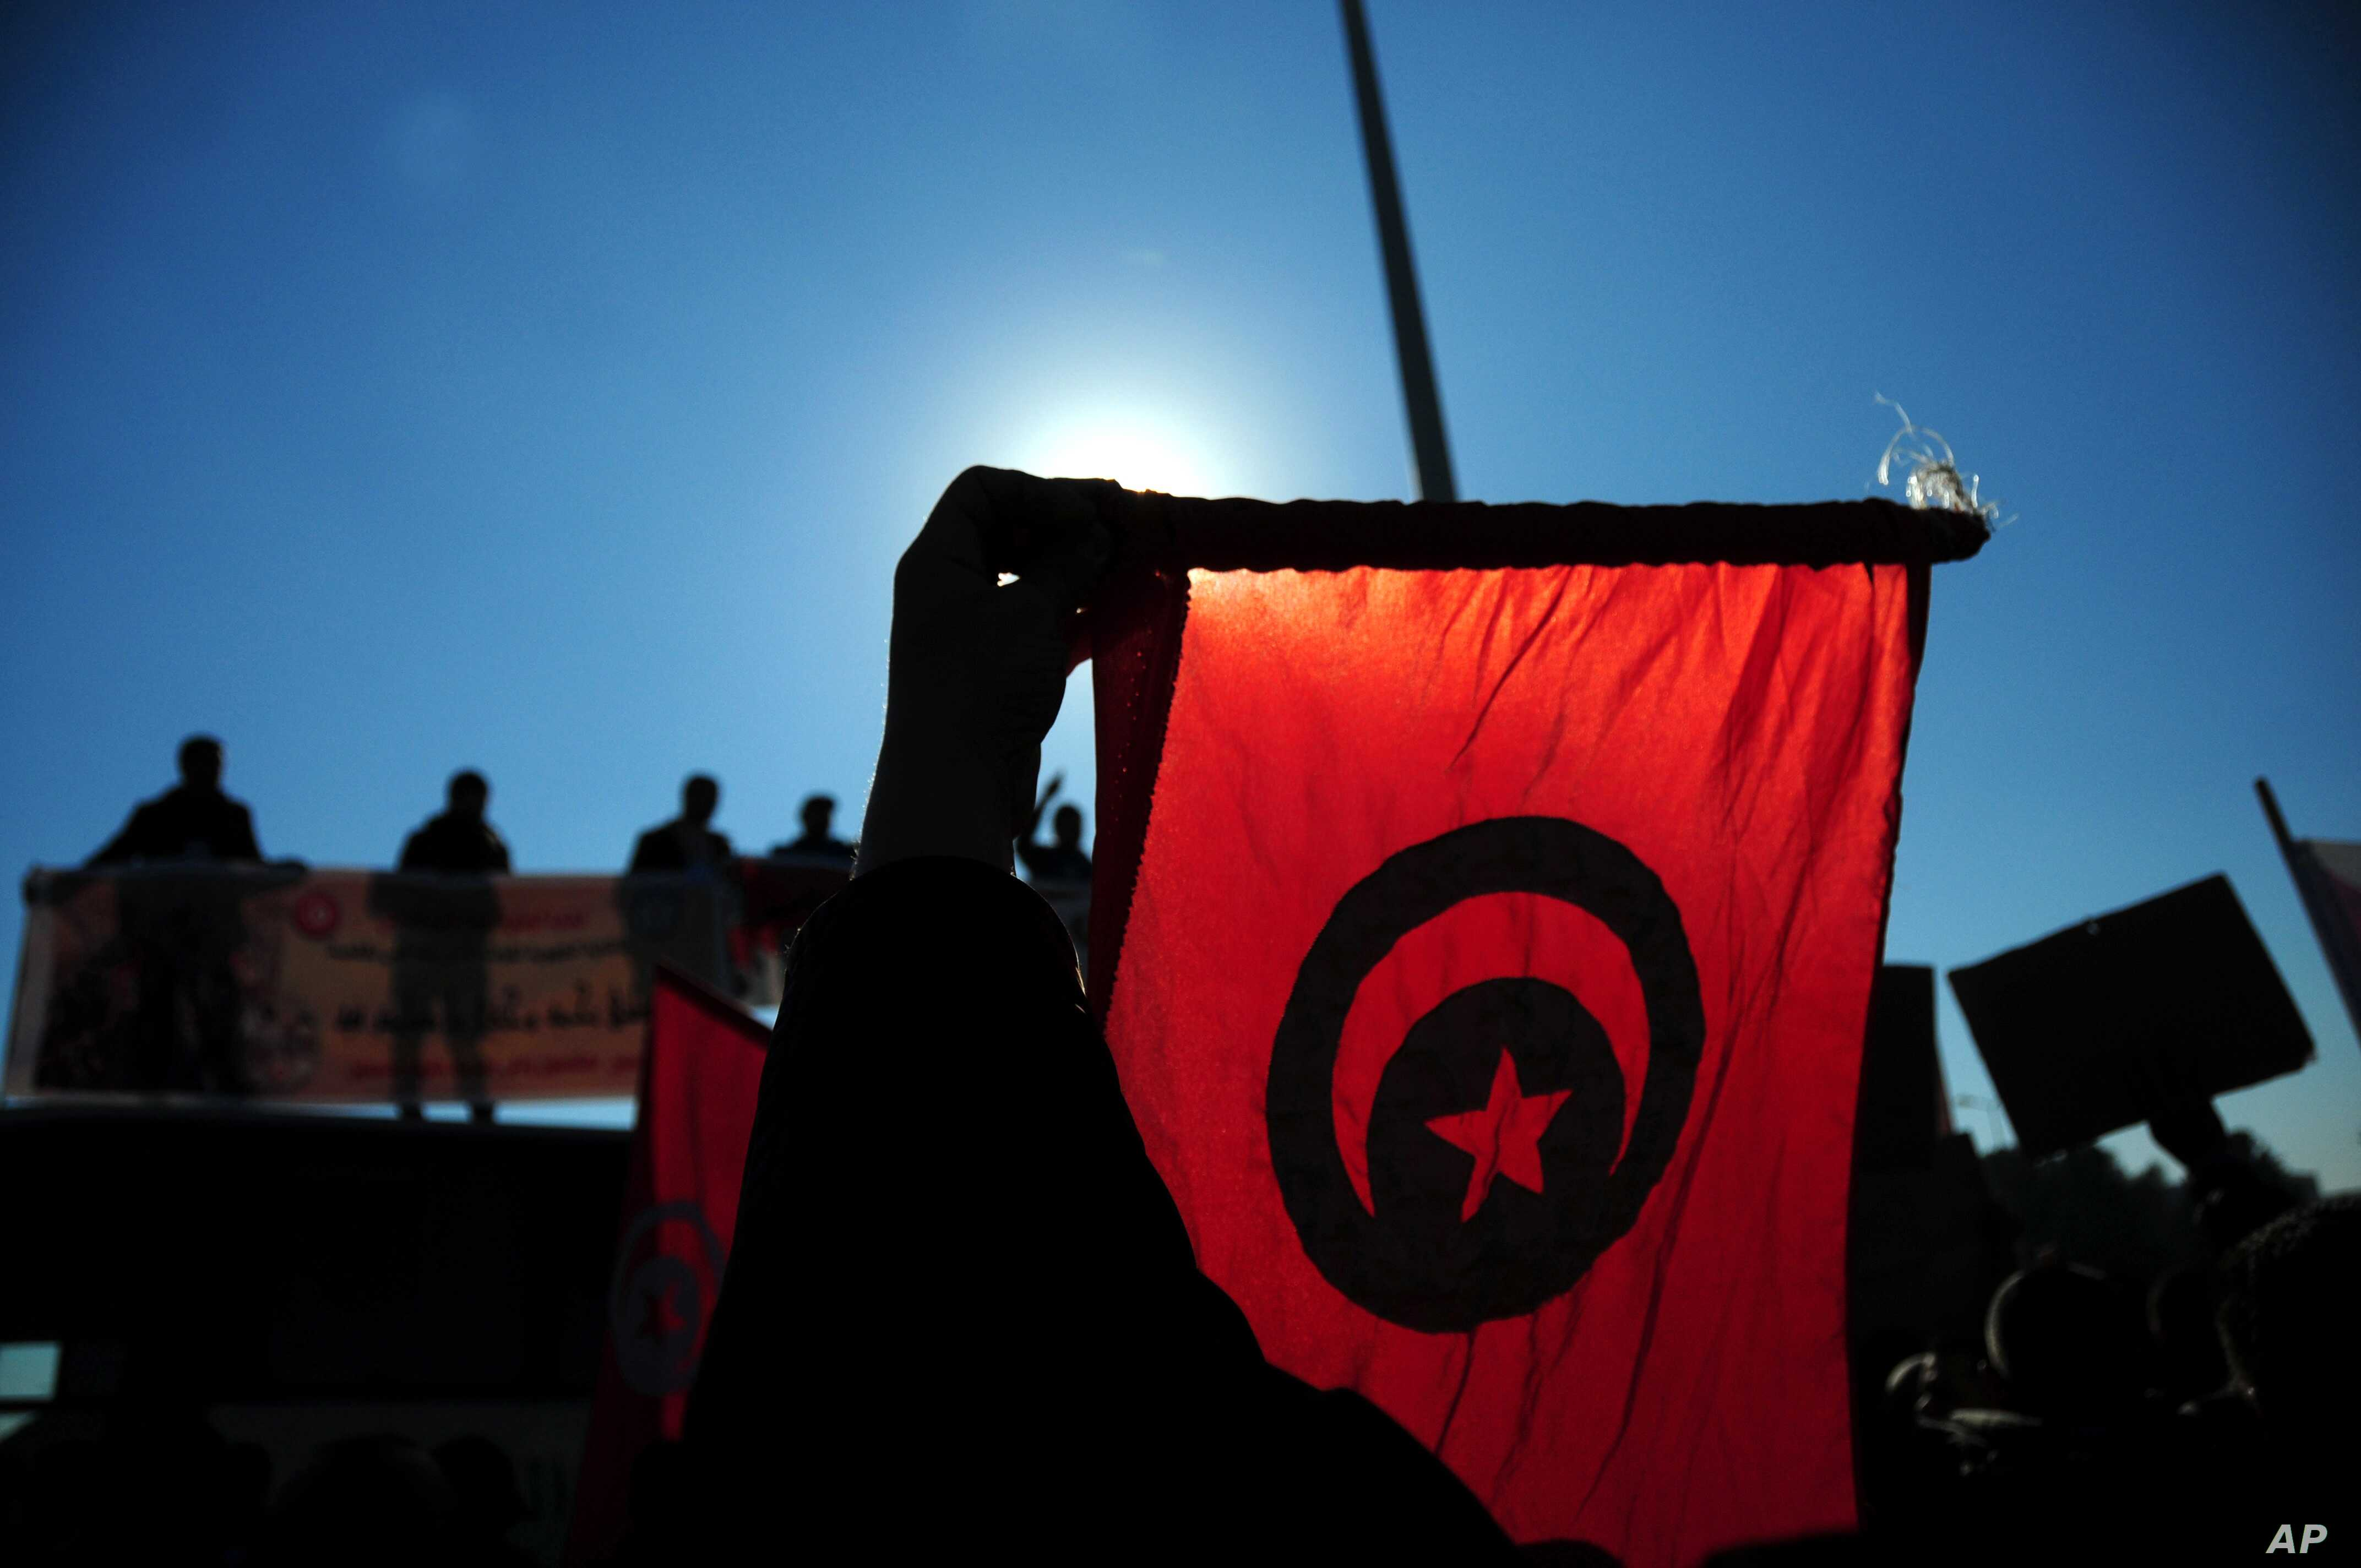 Analysts: Poor Economy, Unemployment Lure Tunisians to Extremism